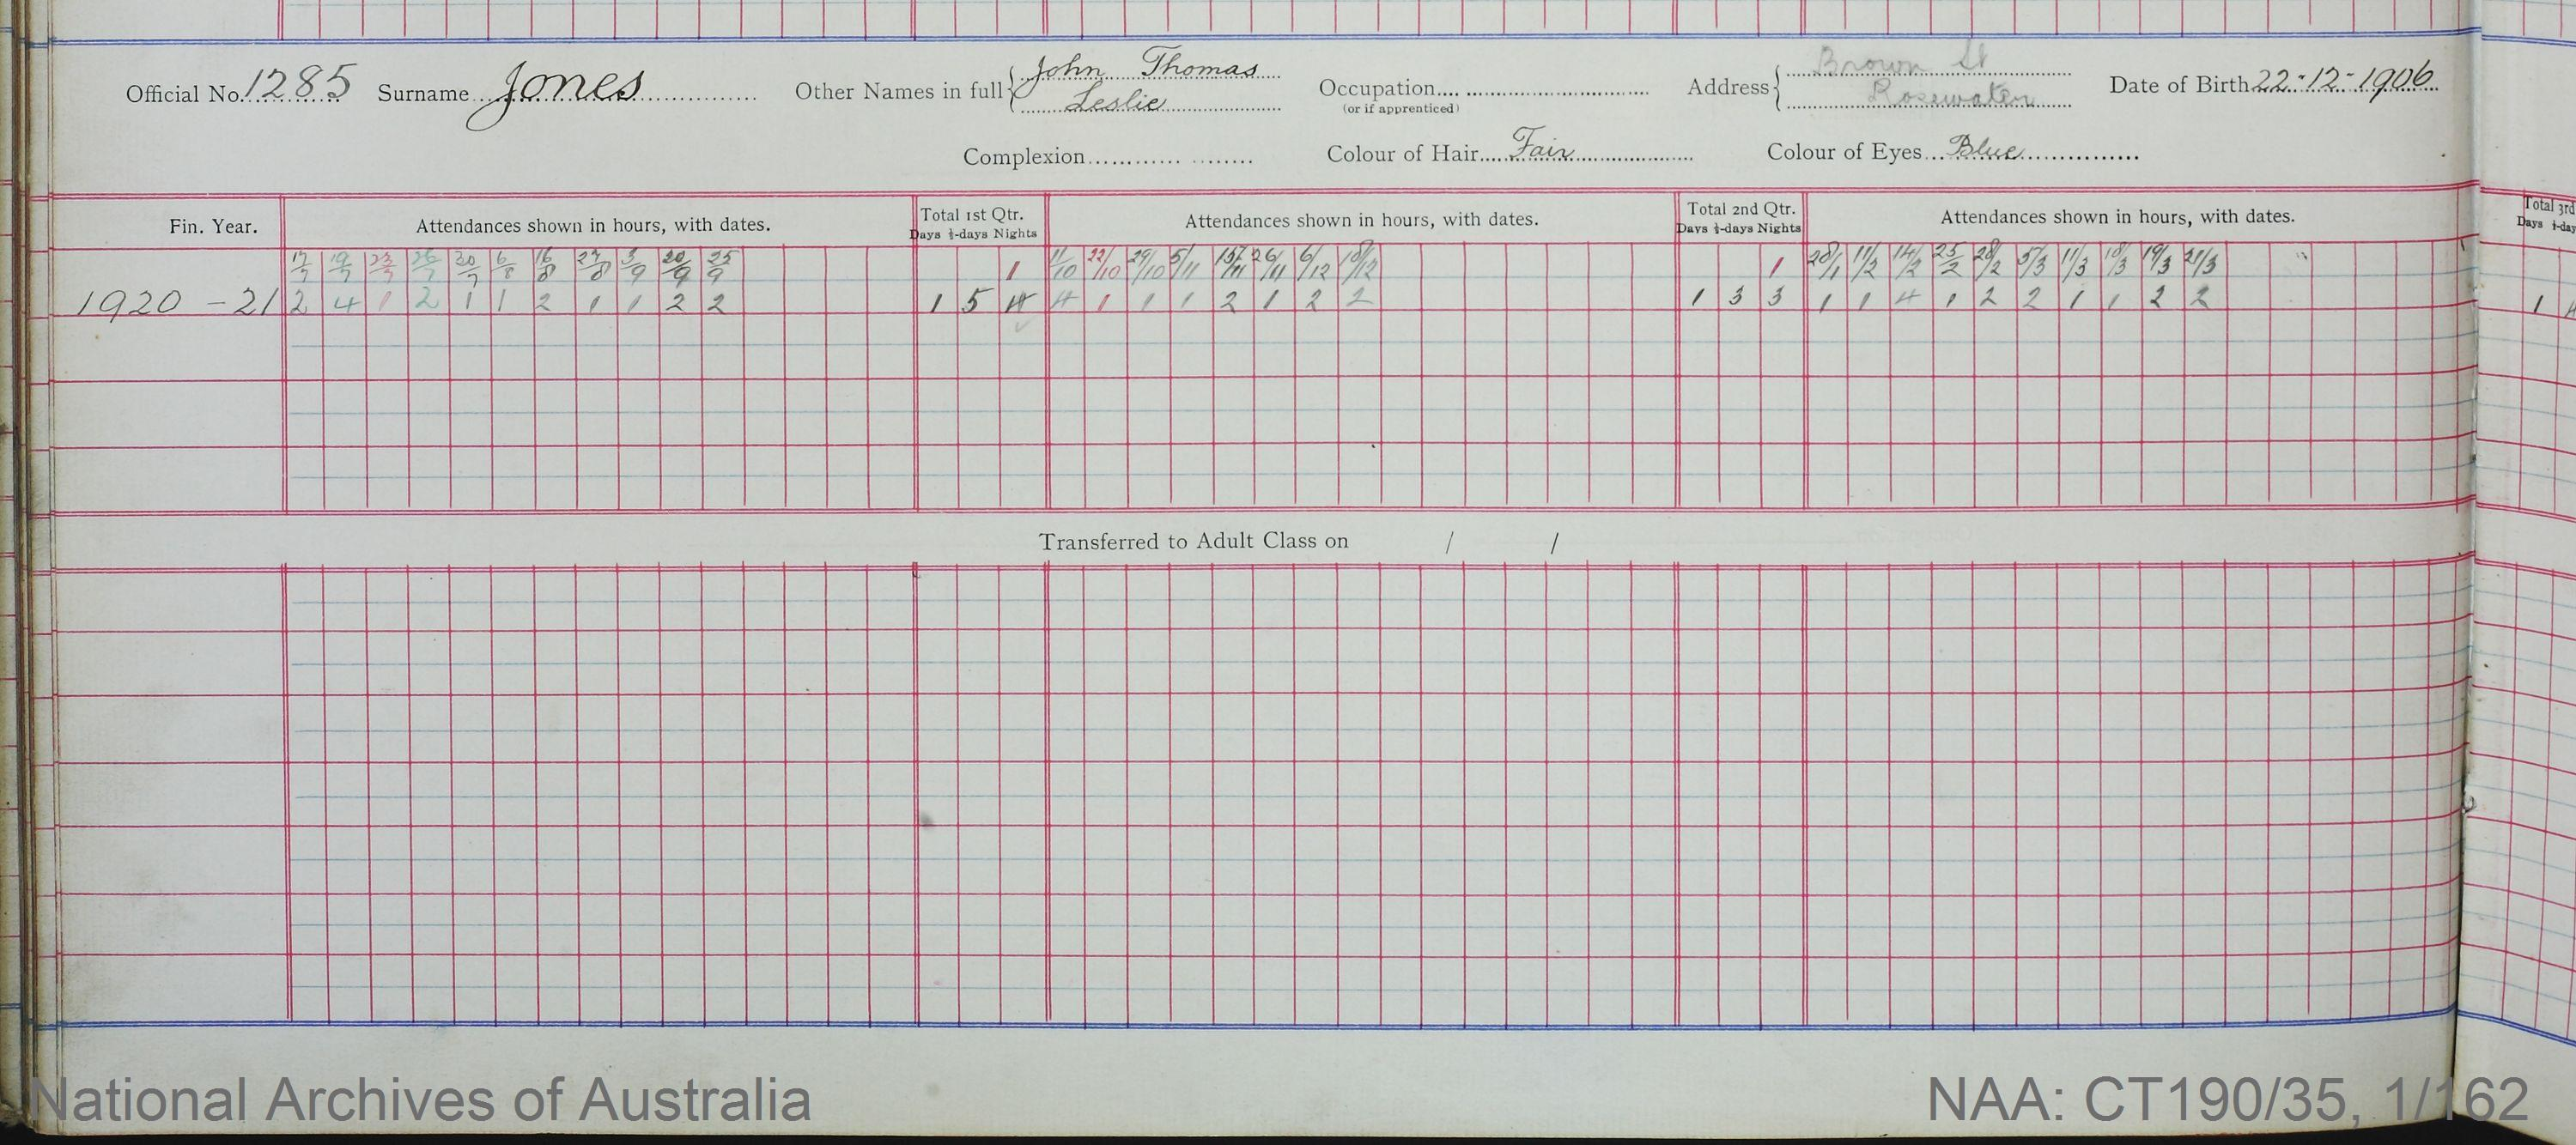 SURNAME - JONES;  GIVEN NAME(S) - John Thomas Leslie;  OFFICIAL NUMBER - 1285;  DATE OF BIRTH - 22 December 1906;  PLACE OF BIRTH - [Unknown];  NEXT OF KIN - [Unknown];  SERVICE/STATION - Alberton, South Australia;  REGISTRATION DATE - 31 January 1920